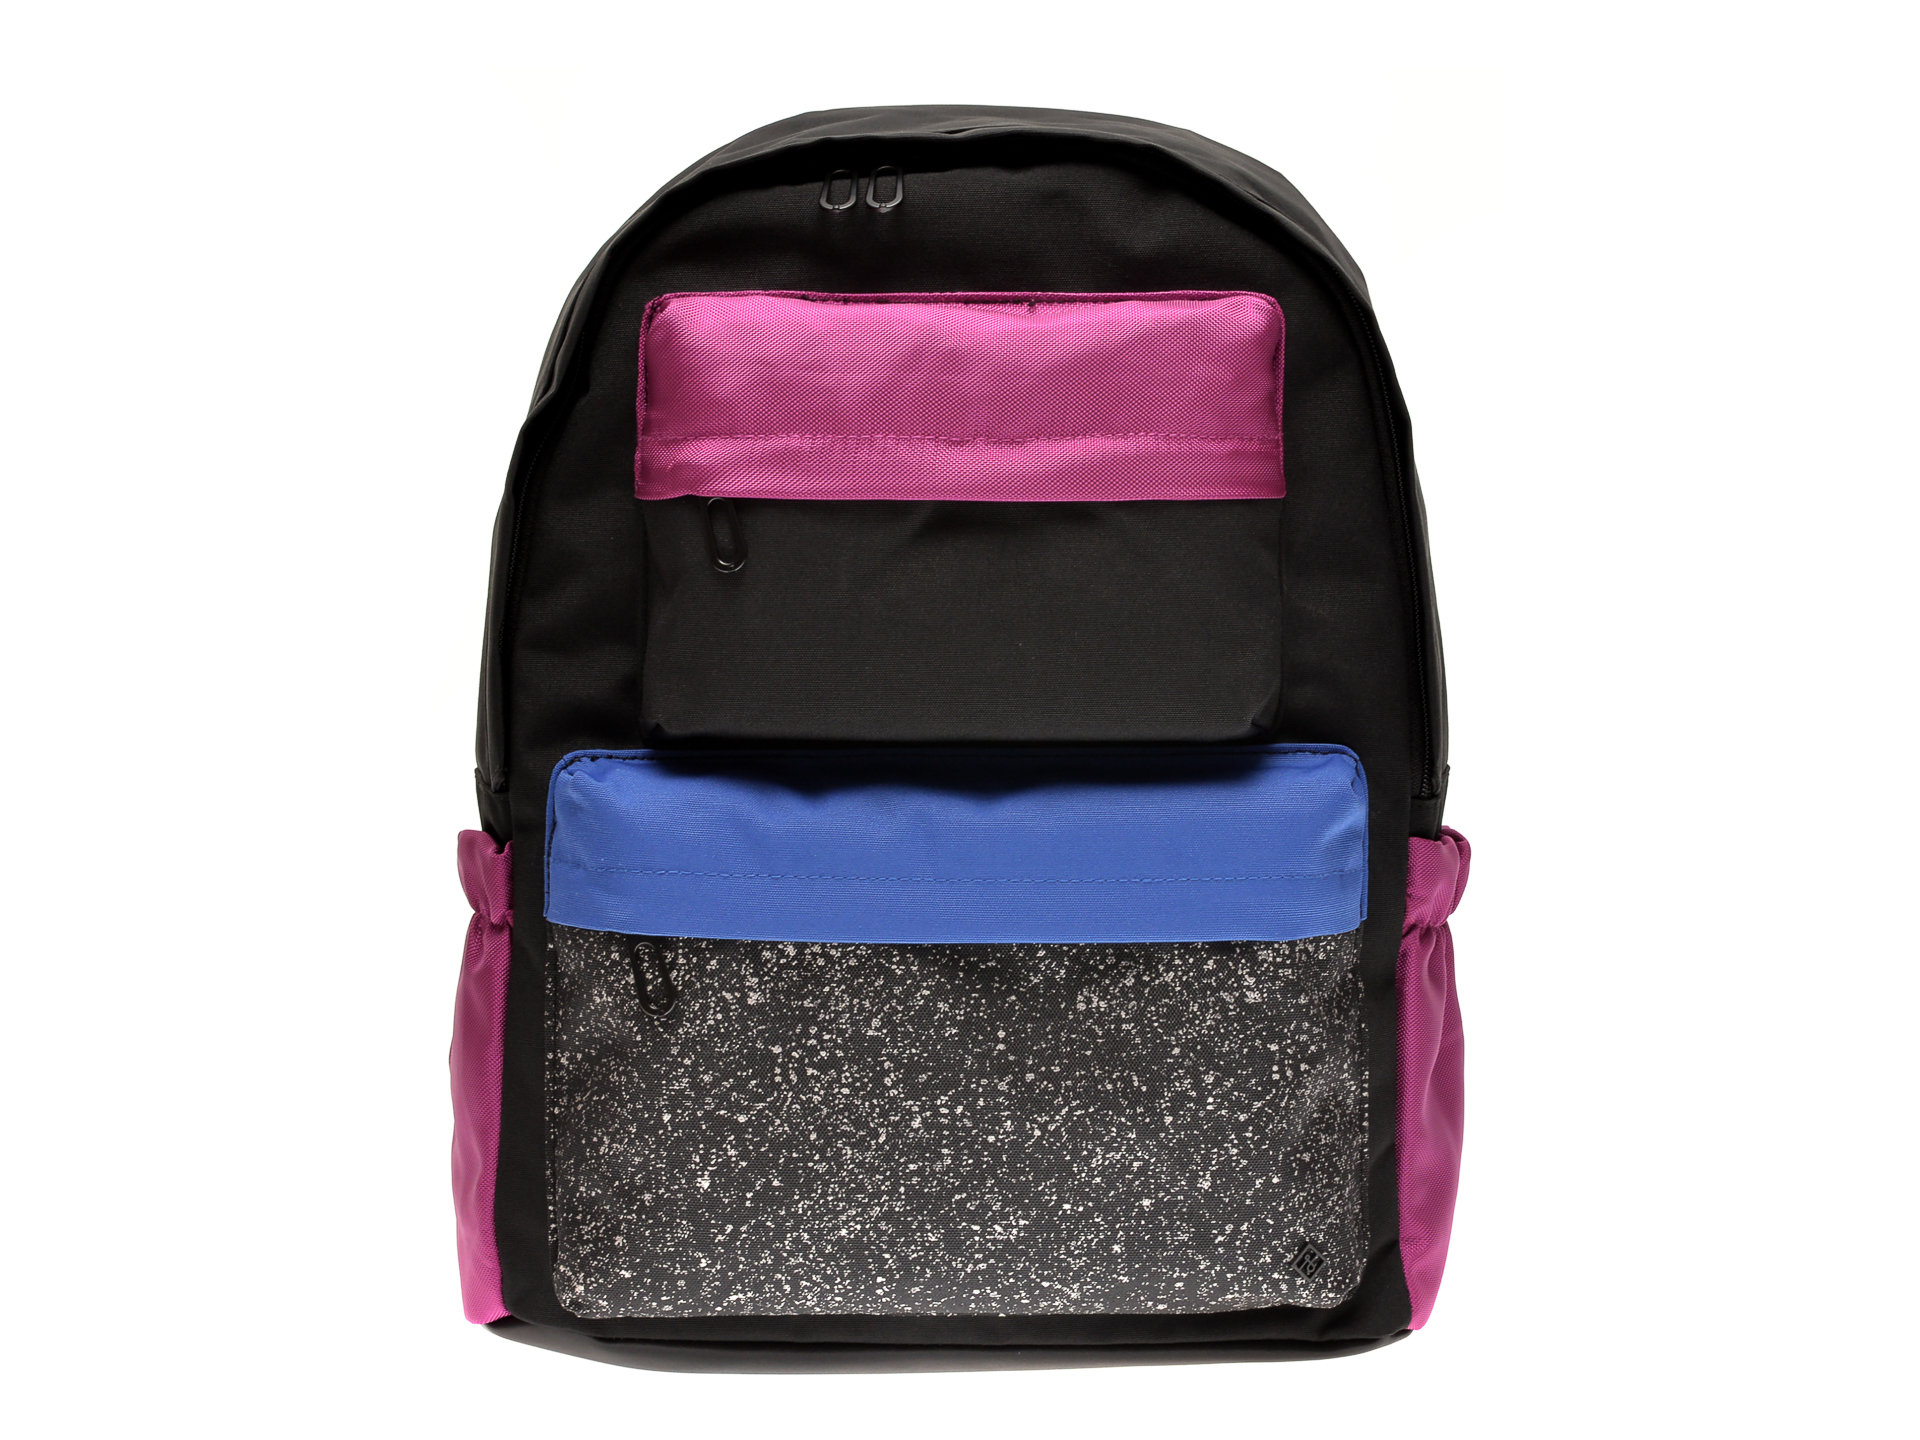 Rucsac CALL IT SPRING negru, COLO001, din material textil imagine otter.ro 2021